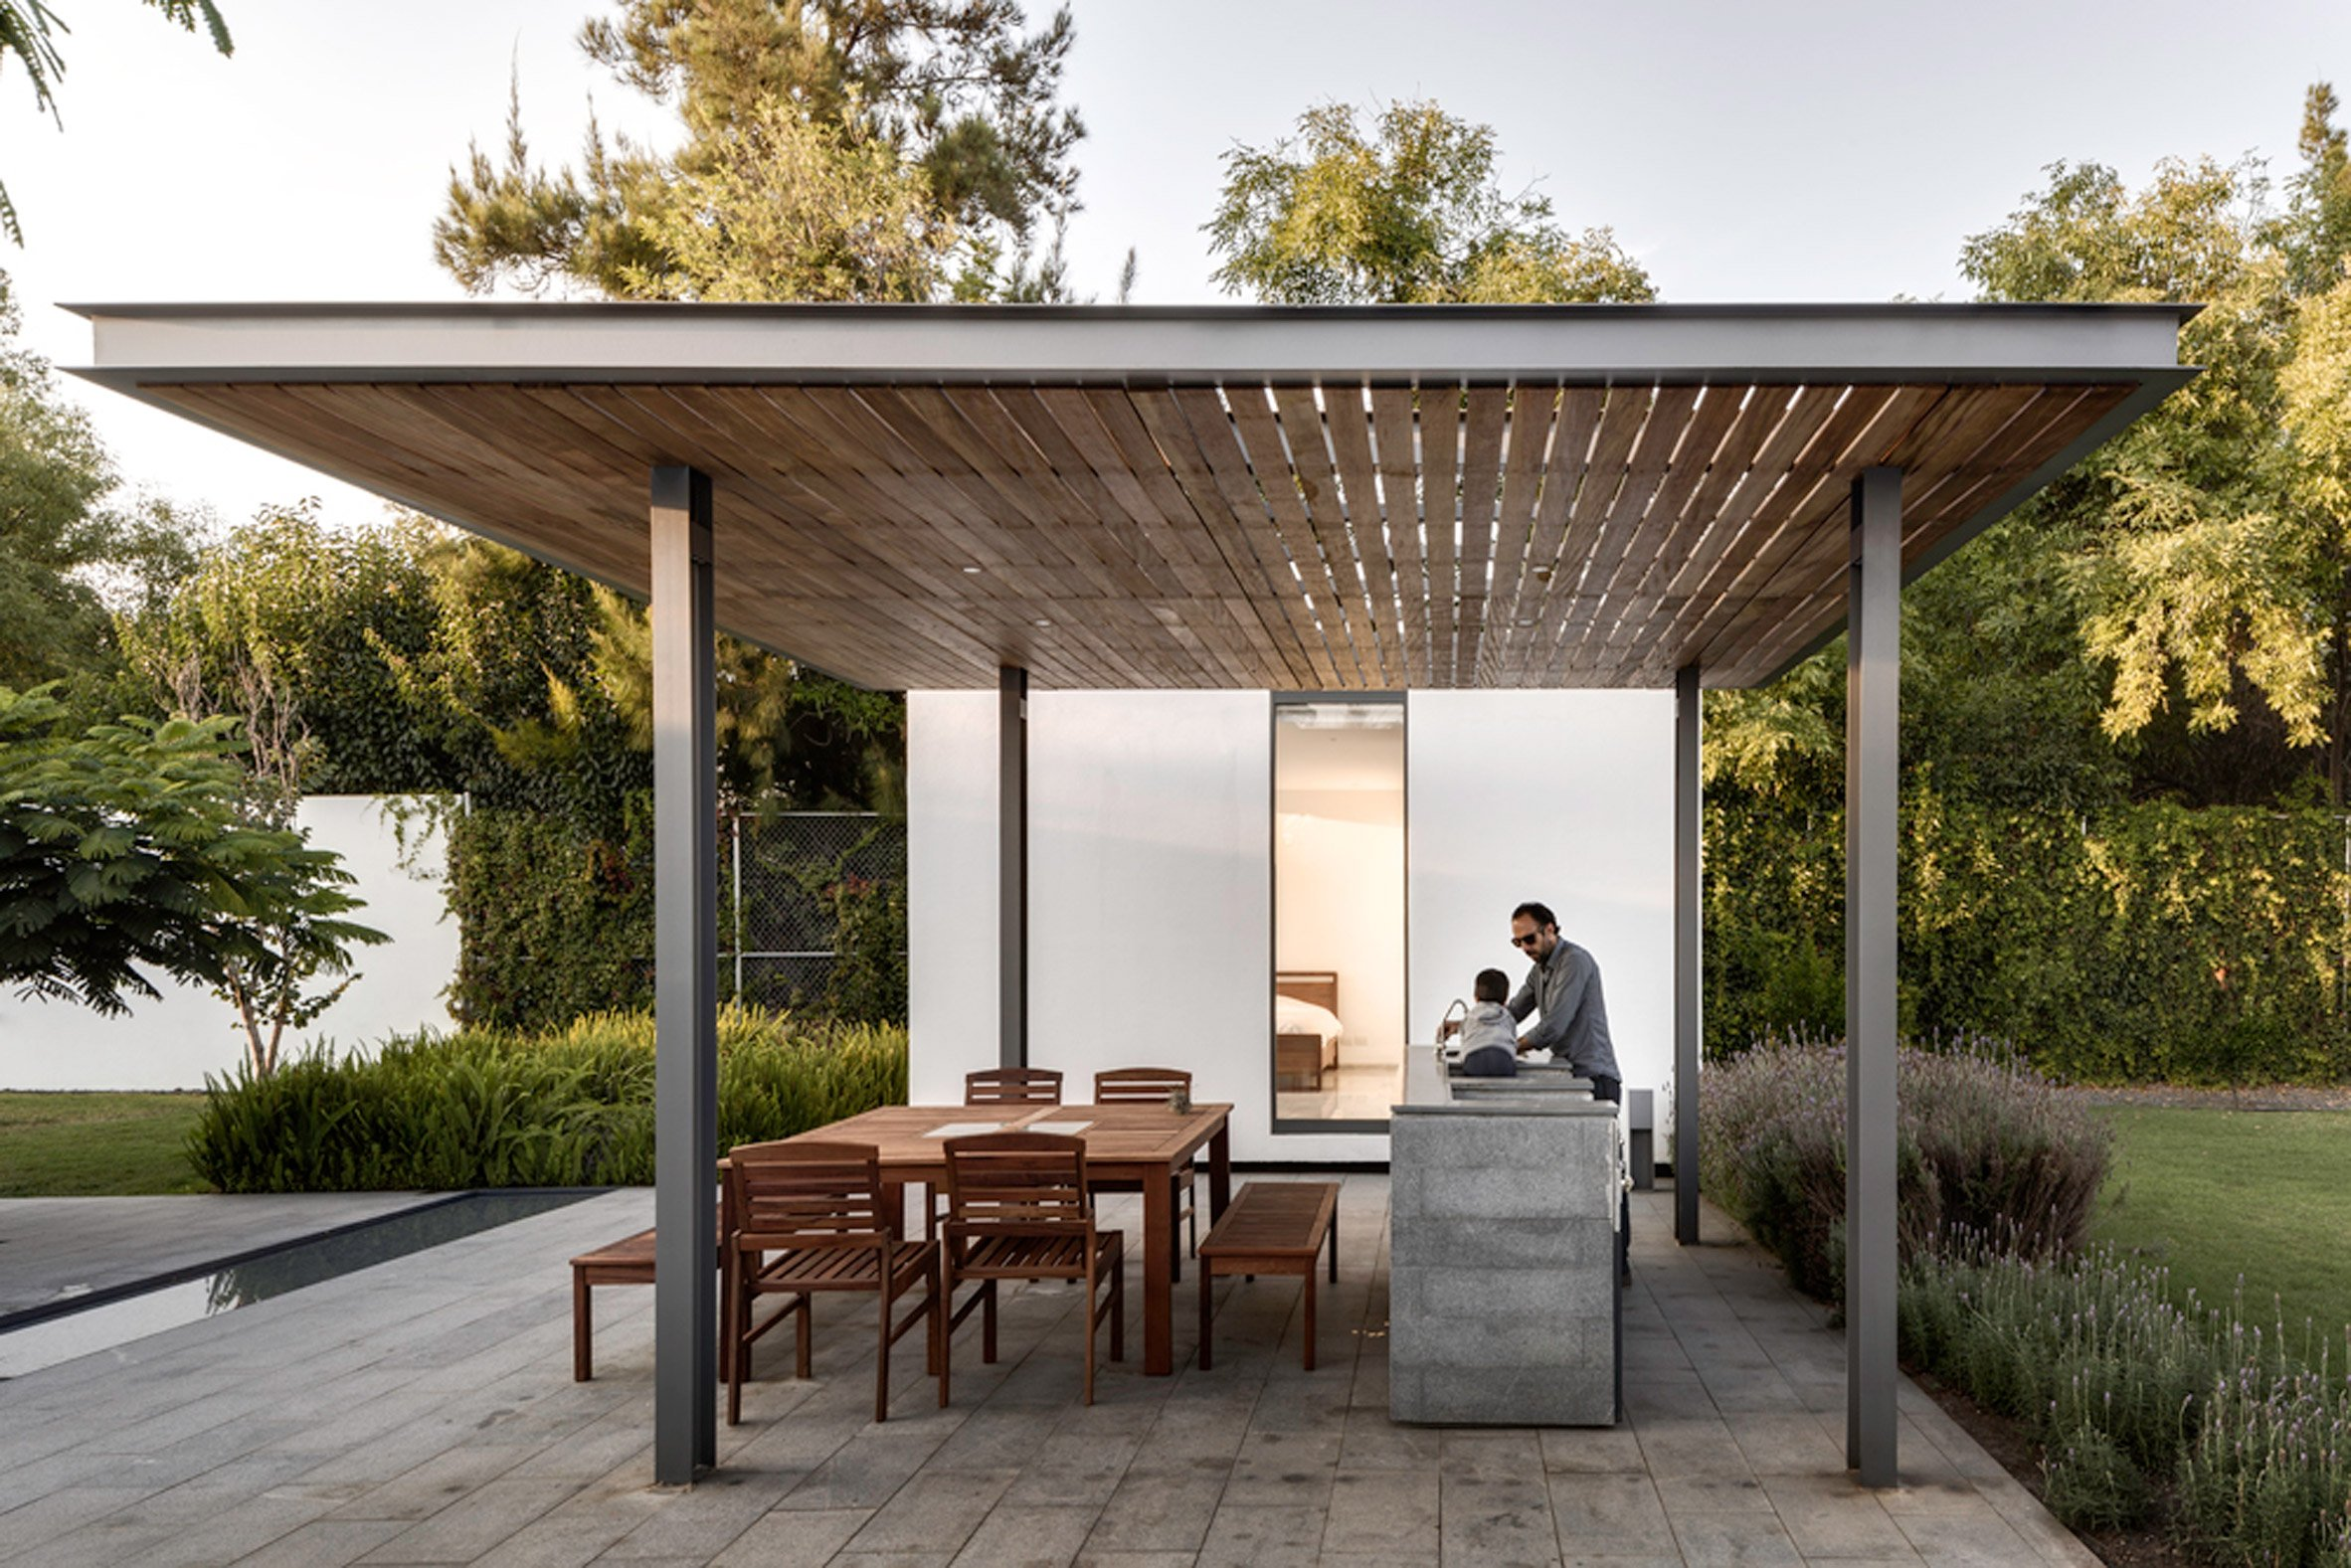 Outdoor dining space on granite terrace